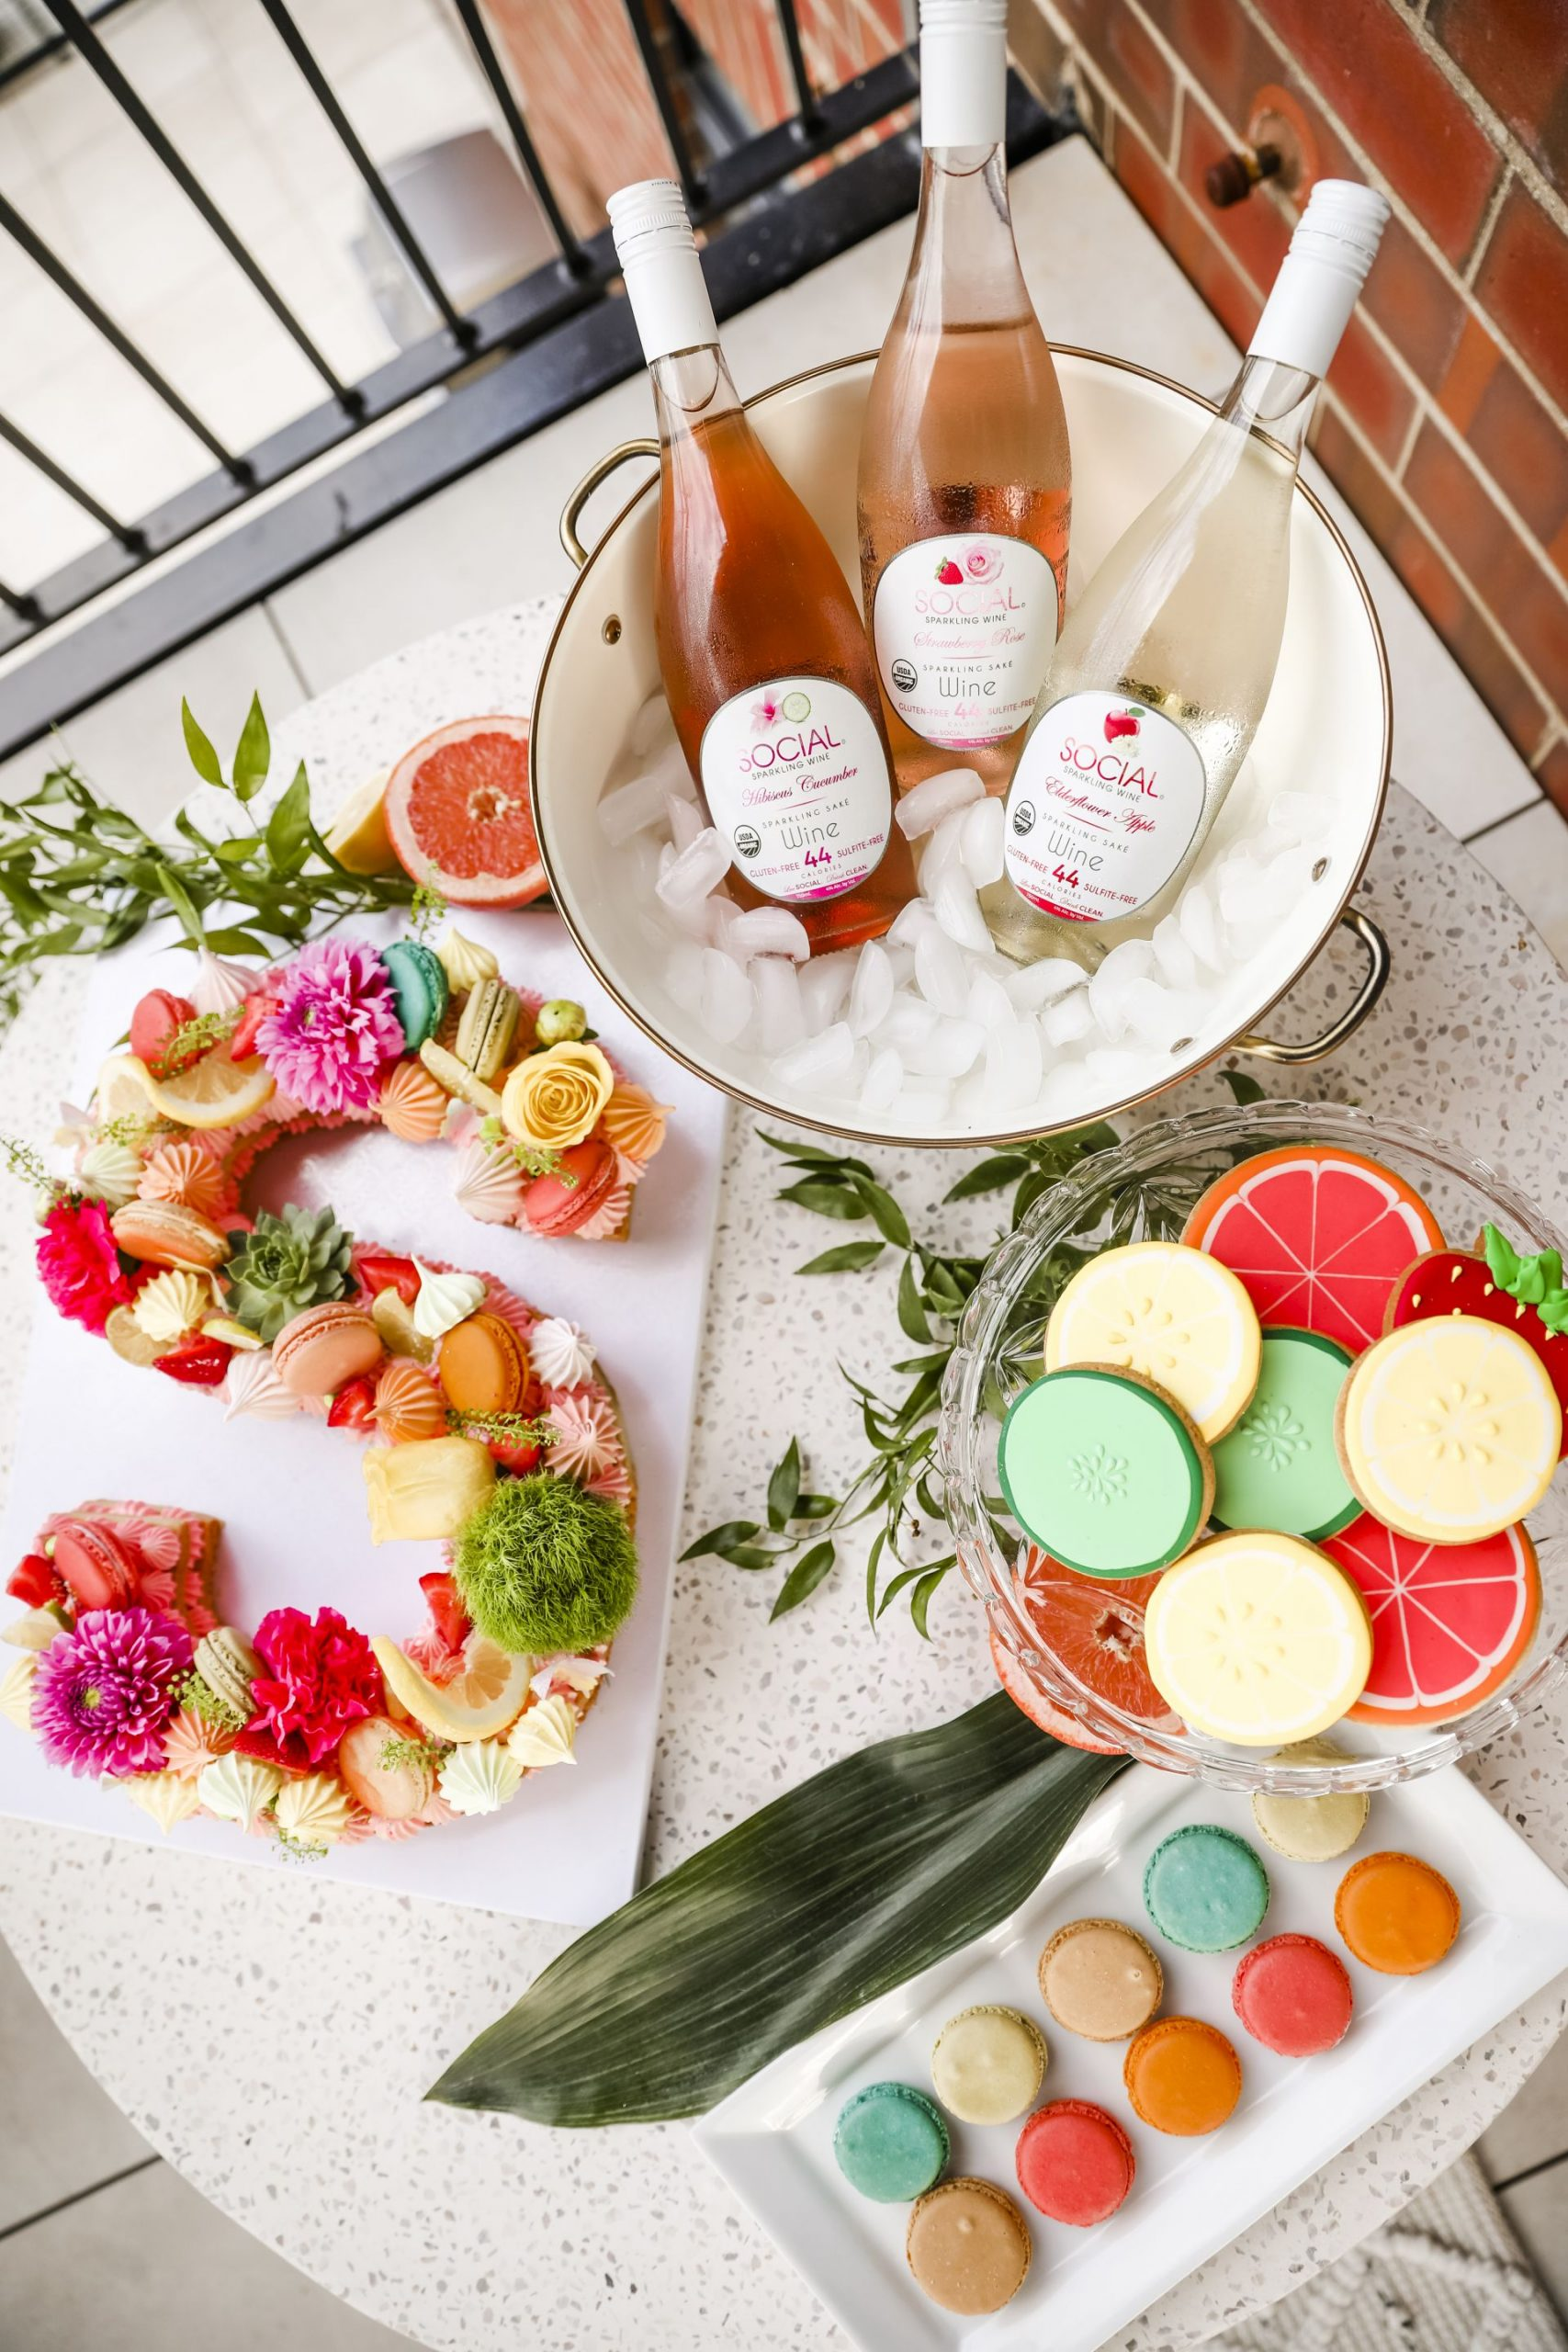 vanille patisserie, best dessert table, social sparkling wine, best patio party, macaron letter cake, Jennifer Worman, chicago home